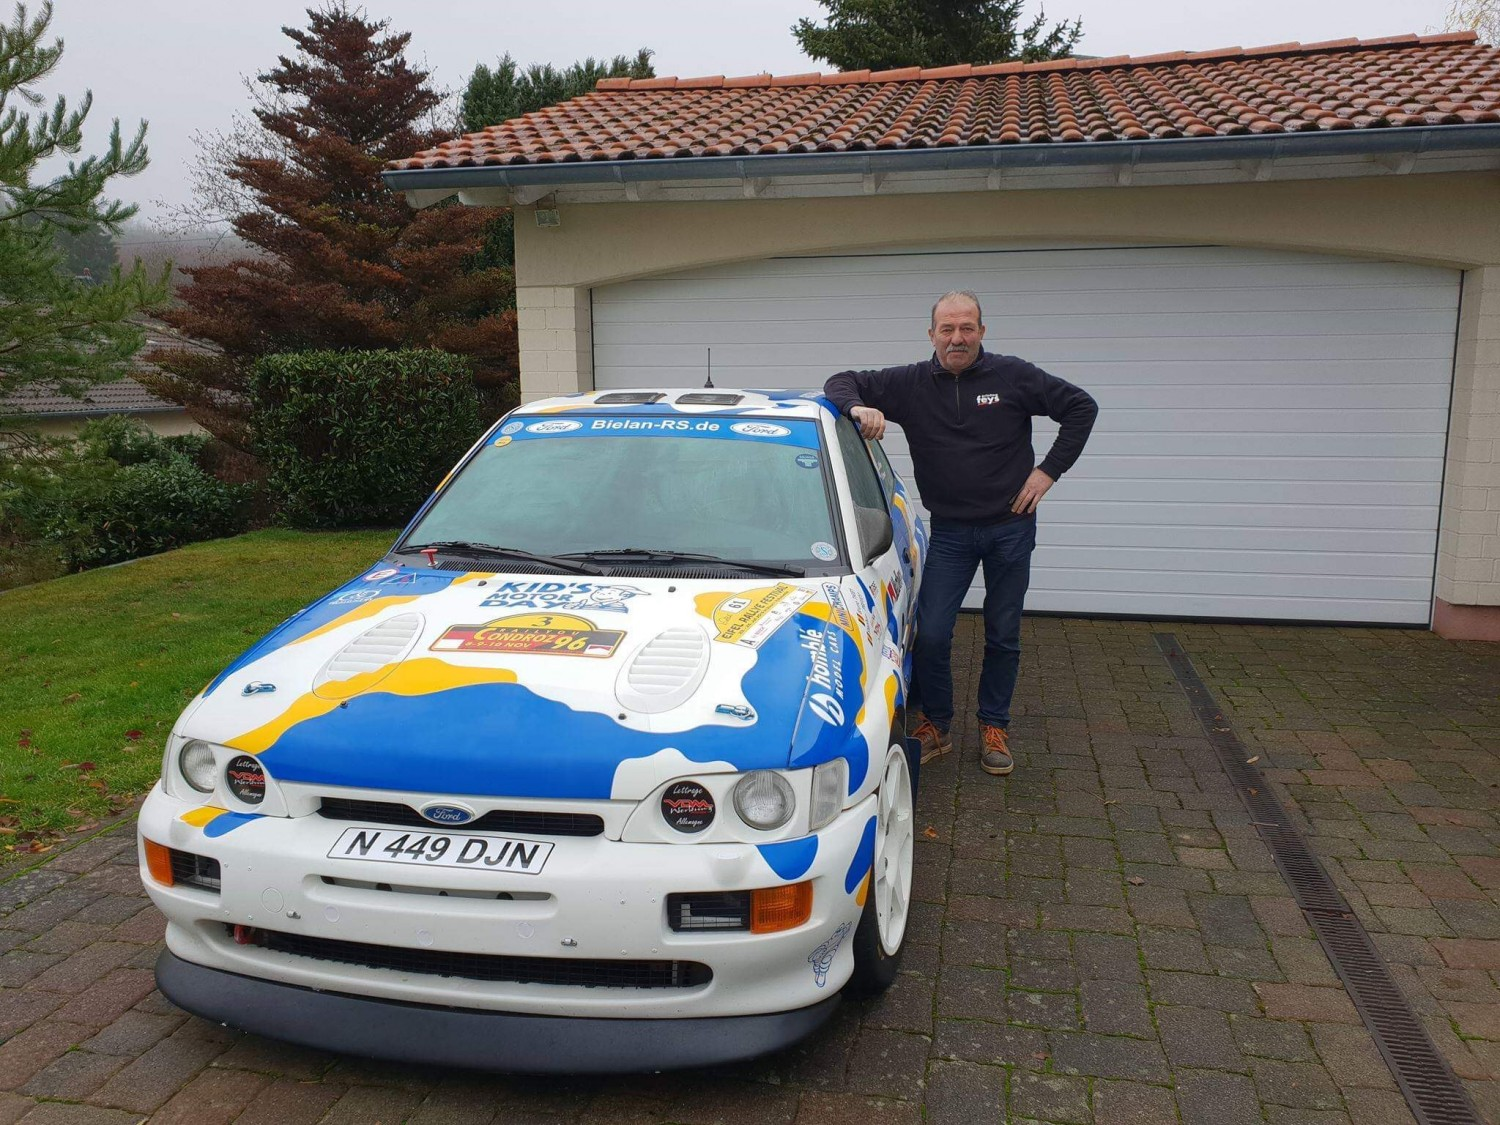 2019 - Paul Lietaer met een Ford Escort Cosworth